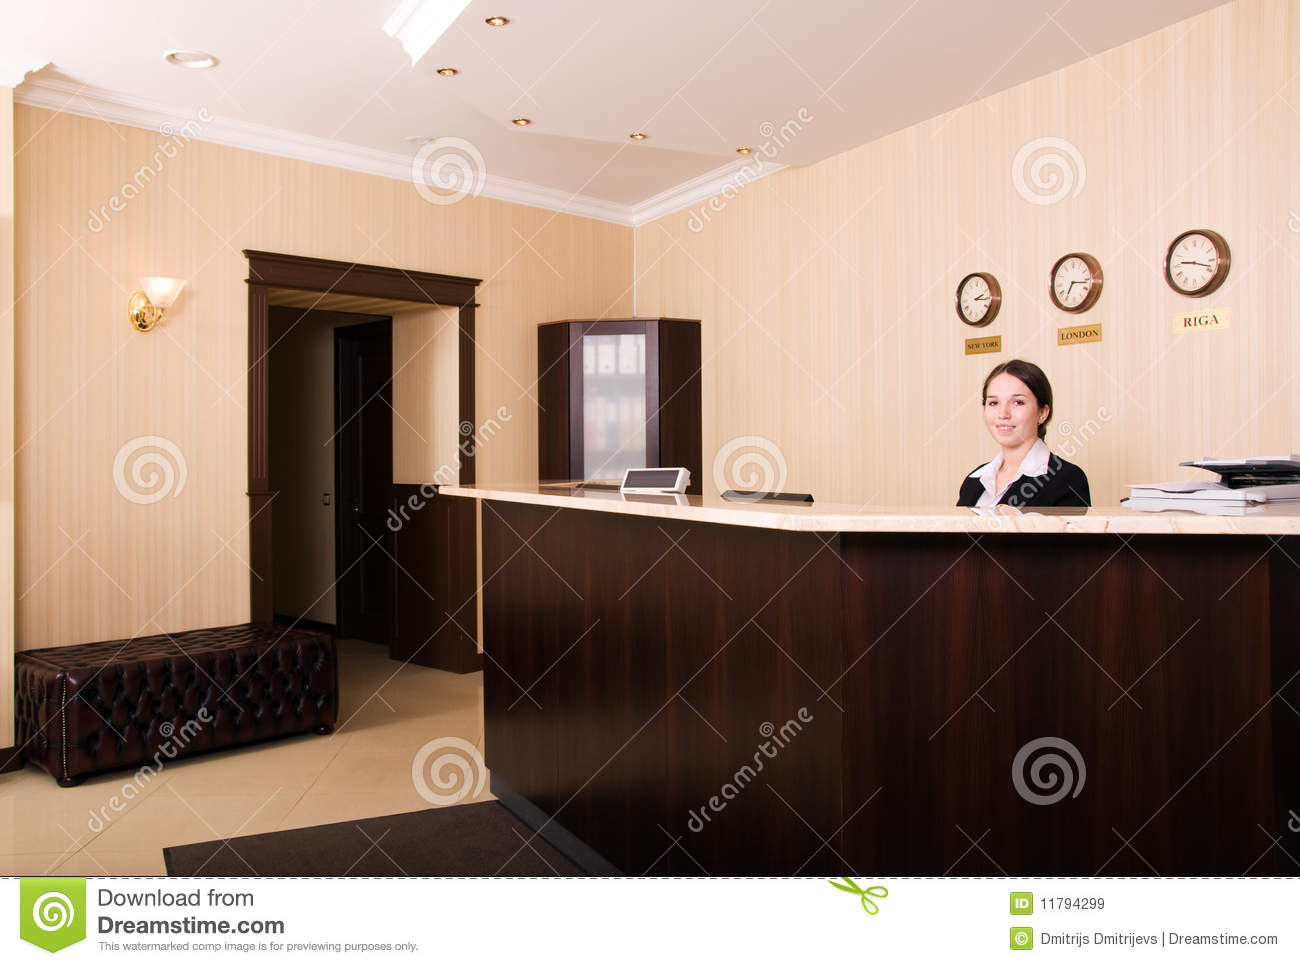 Indoor Wedding Venue Royalty Free Stock Photo: Hotel Reception Stock Image. Image Of People, Corporate